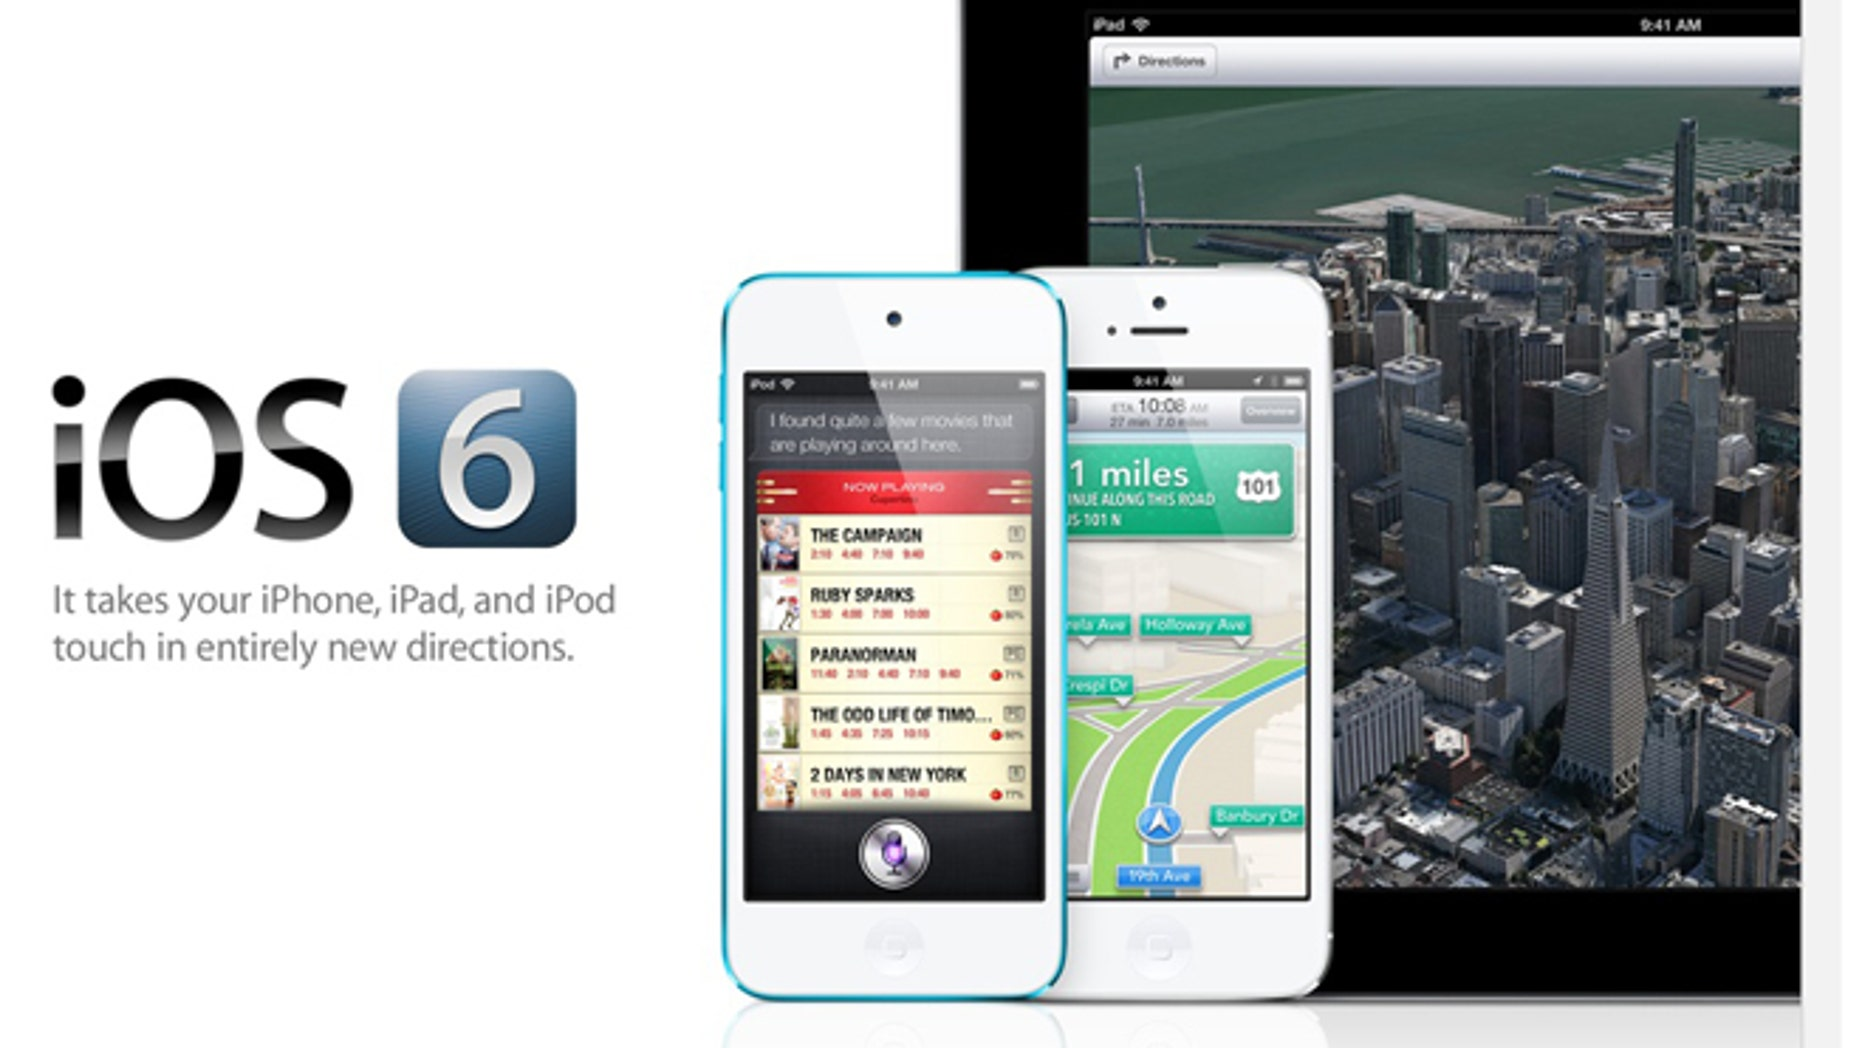 A screenshot of Apple's website offers a look at iOS 6, the latest software powering the company's iPhone, iPad, and iPod touch gadgets.